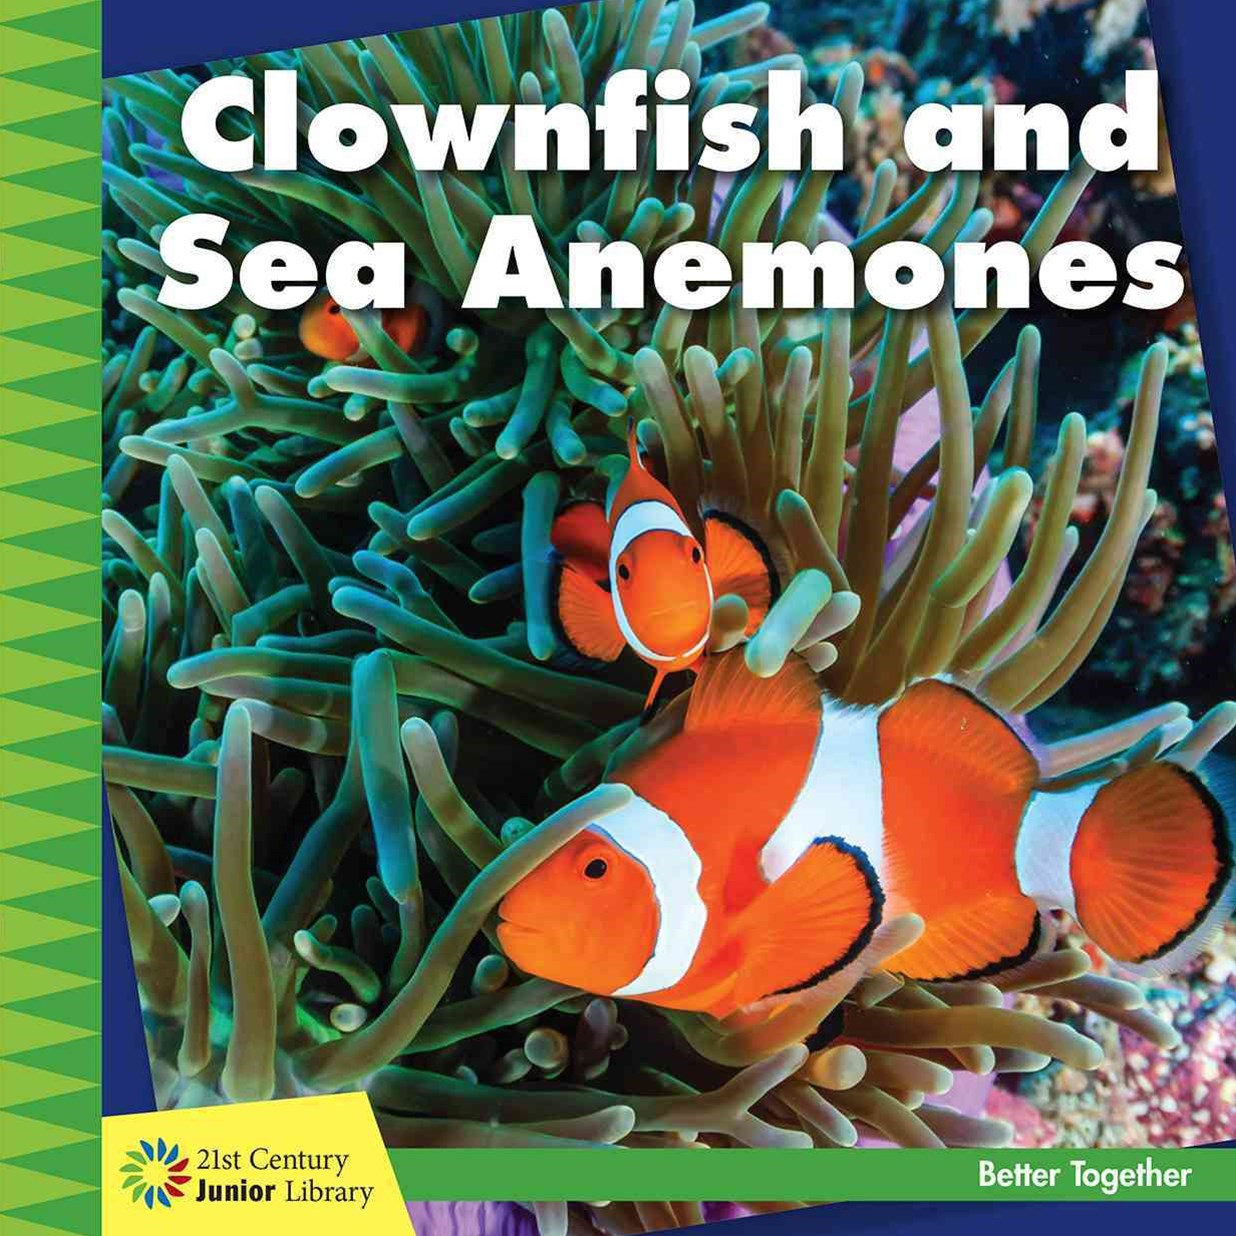 Clownfish and Sea Anemones